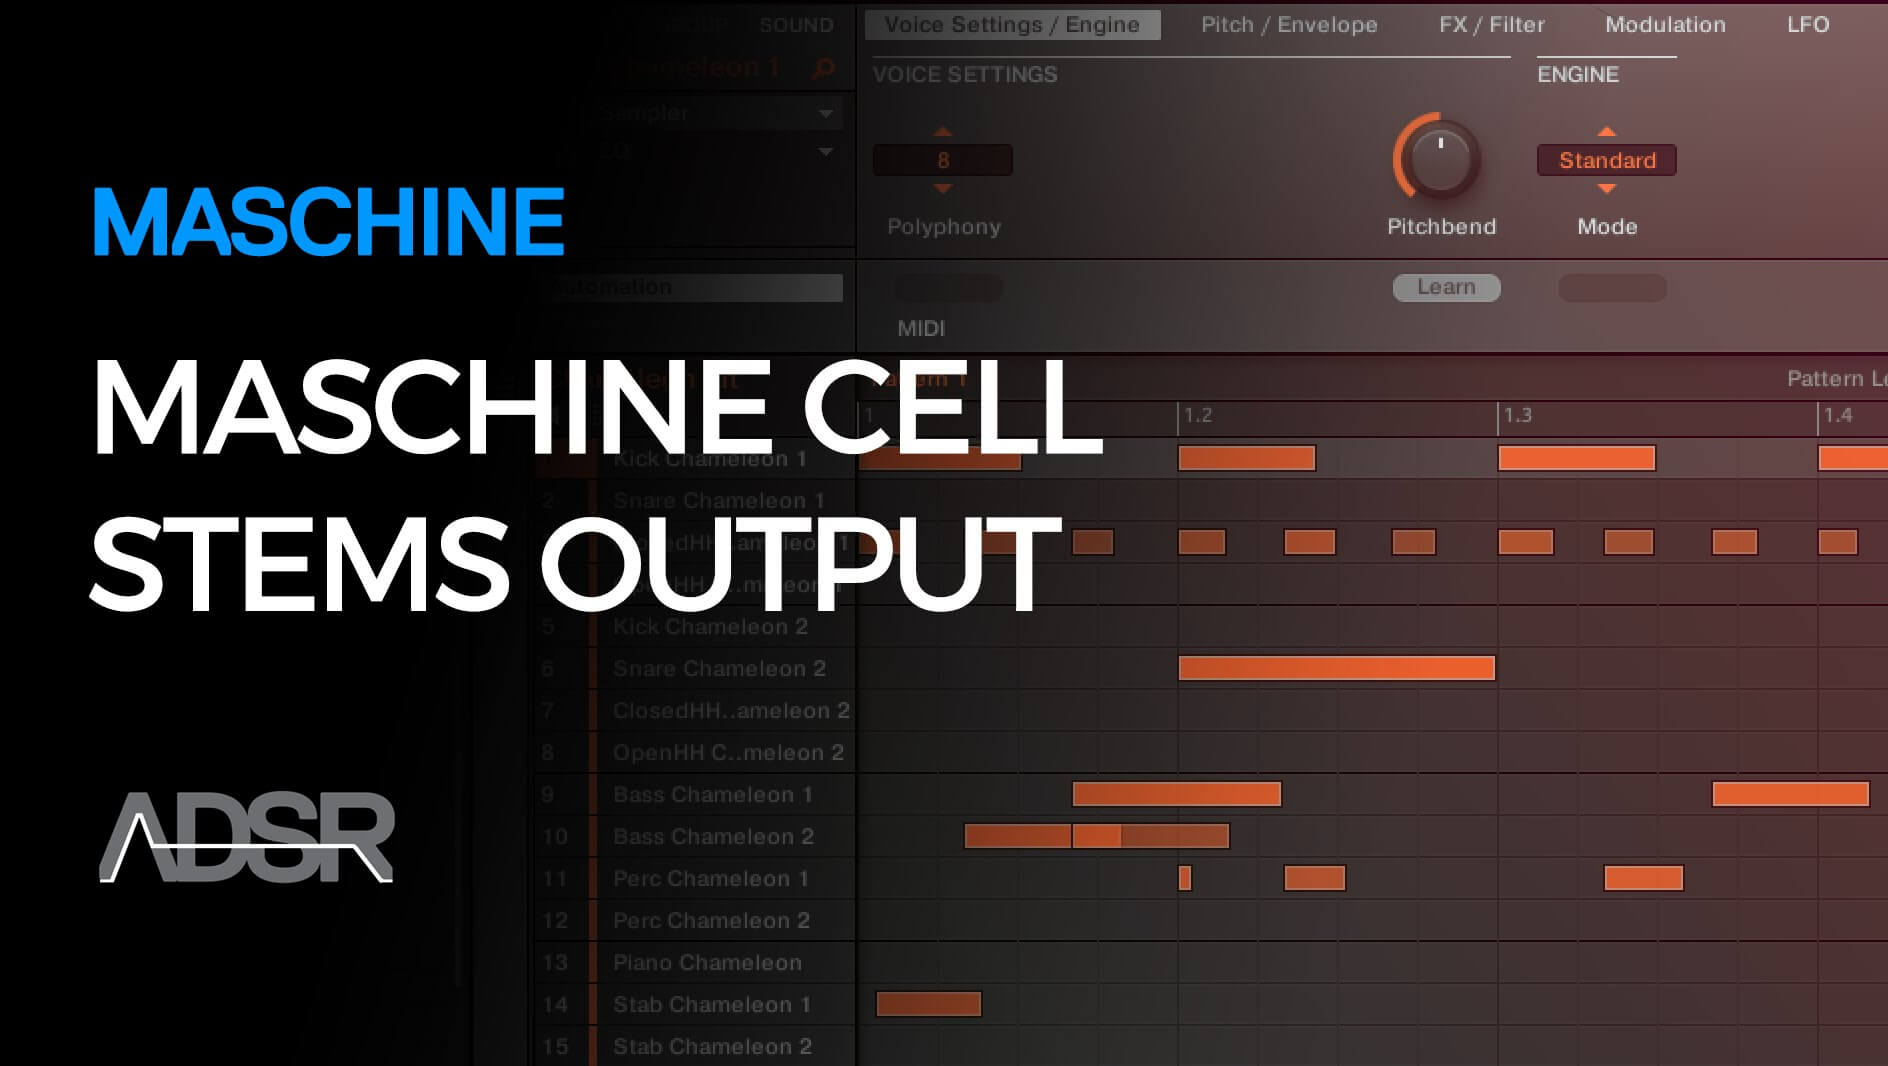 Maschine Cell Stems Output